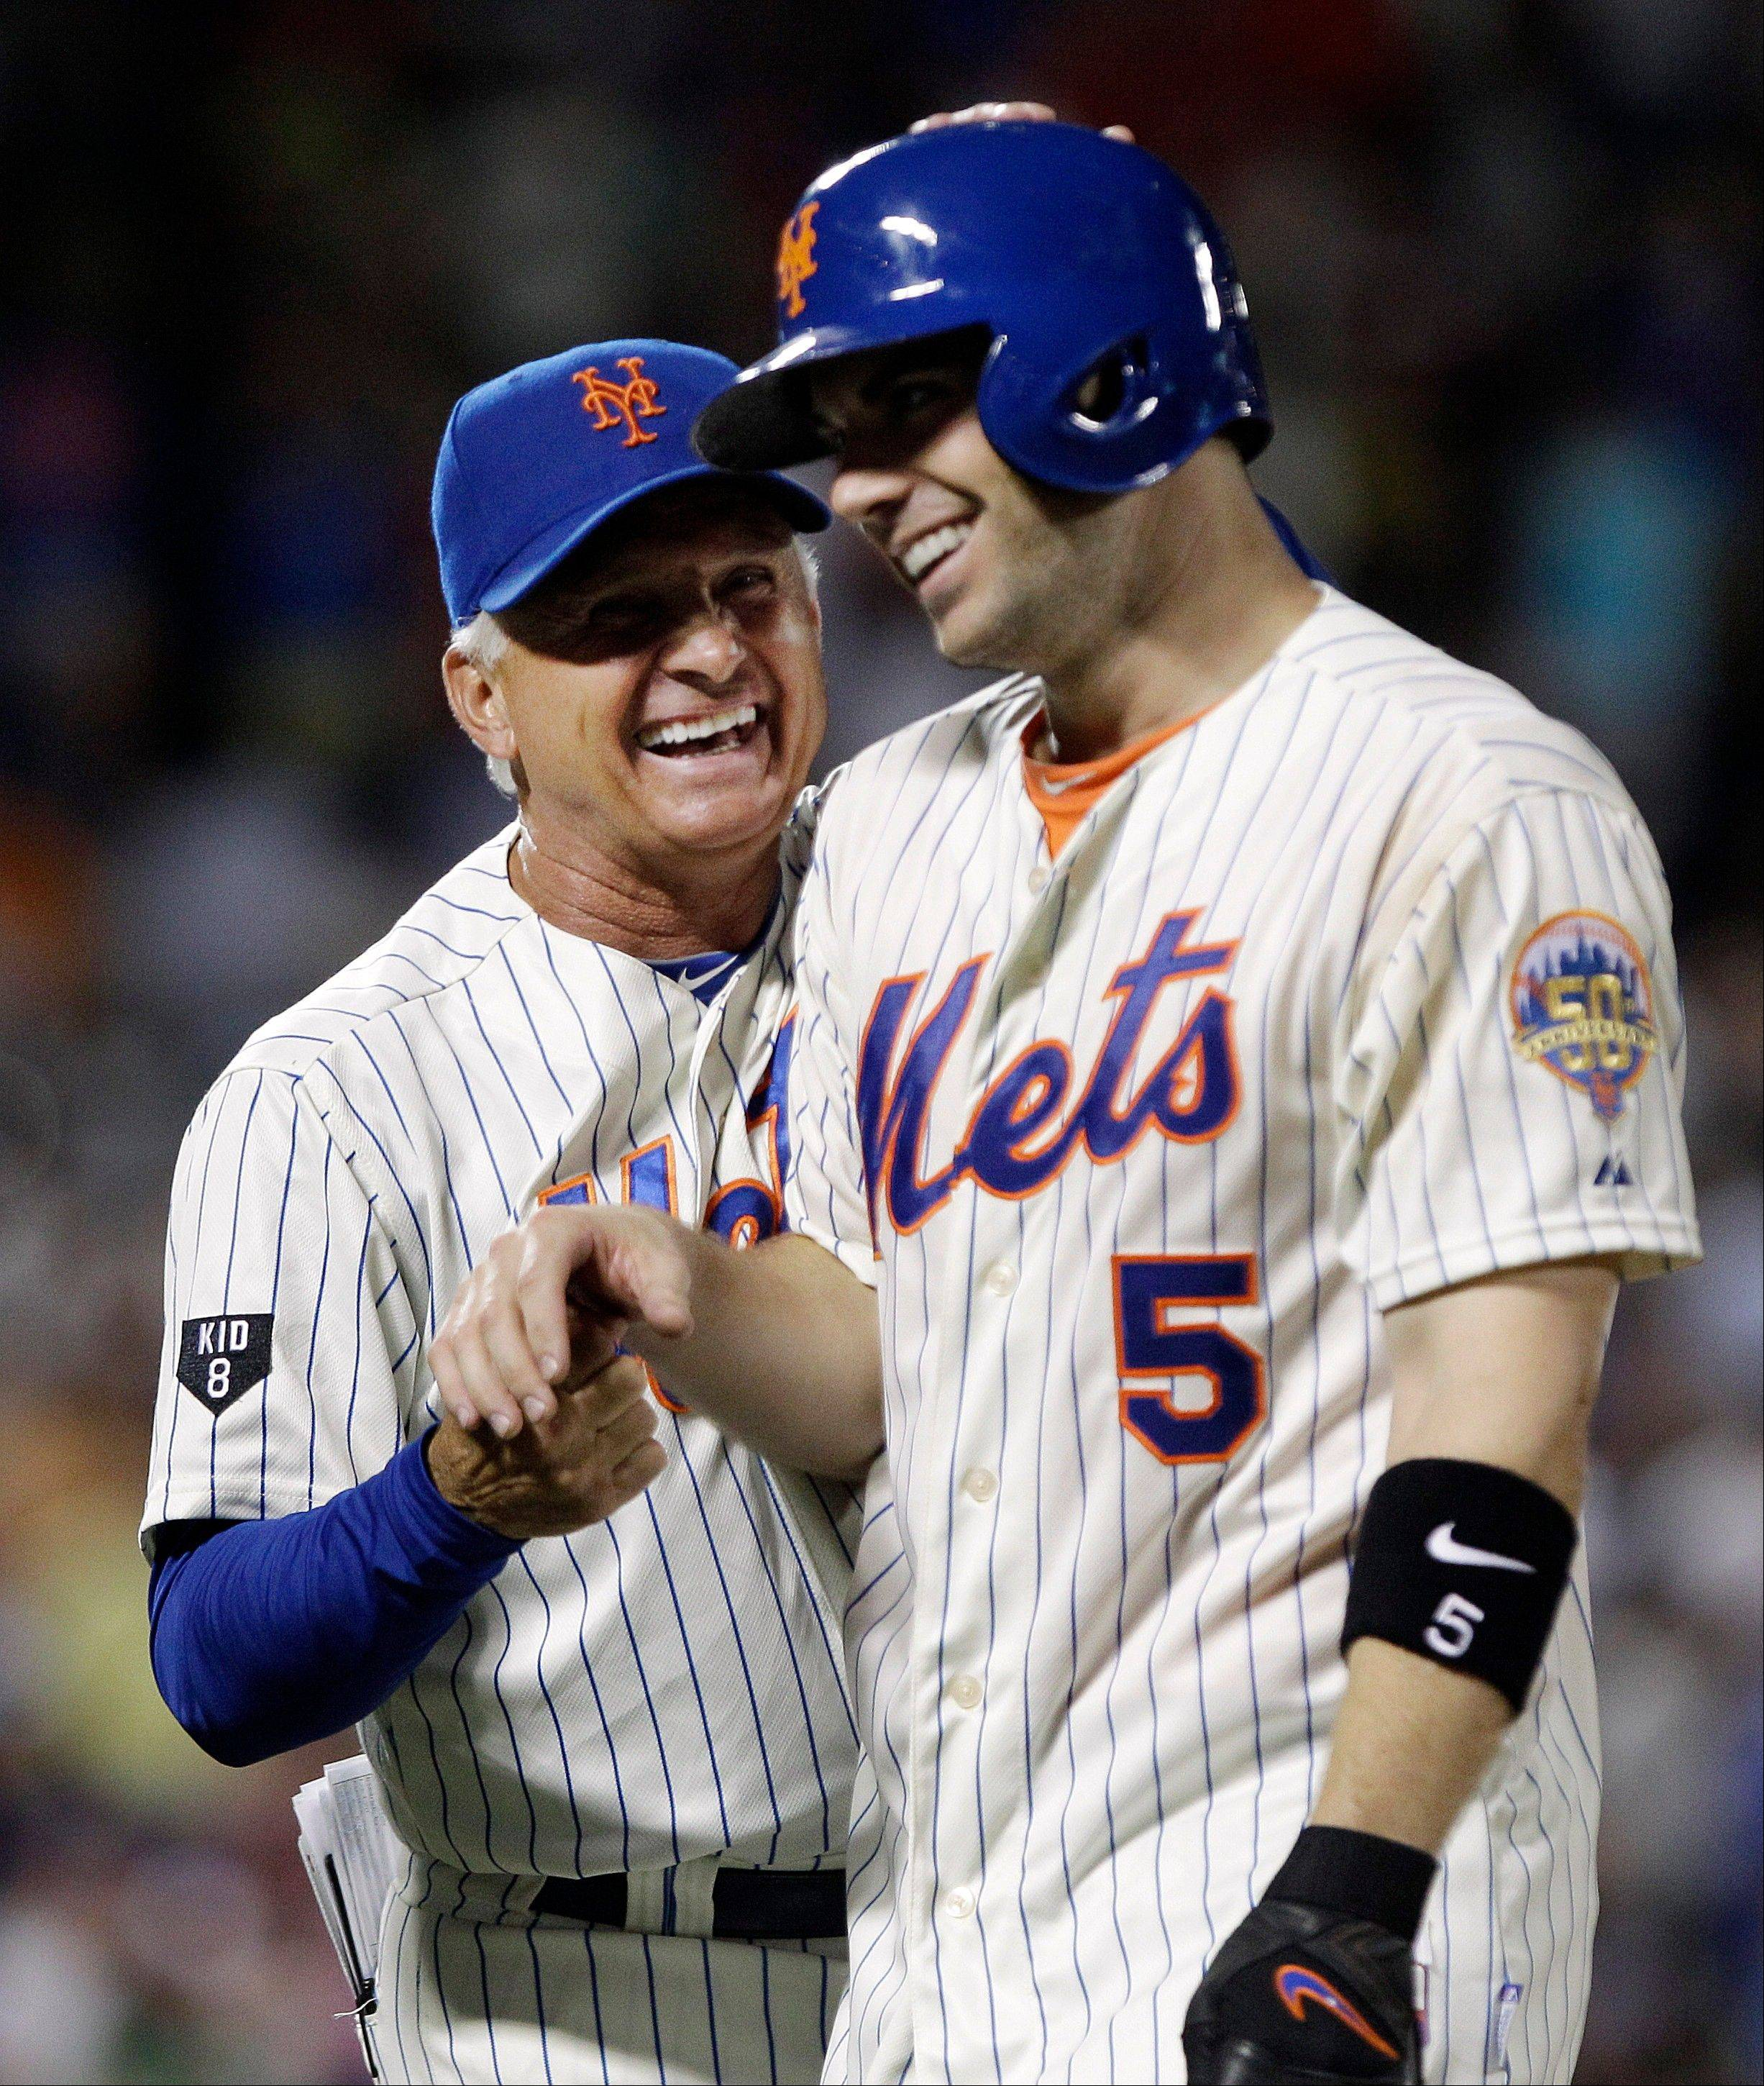 New York Mets manager Terry Collins, left, celebrates with David Wright after Wright drove in the game-winning run Thursday during the ninth inning against the Philadelphia Phillies in New York. The Mets won 6-5.